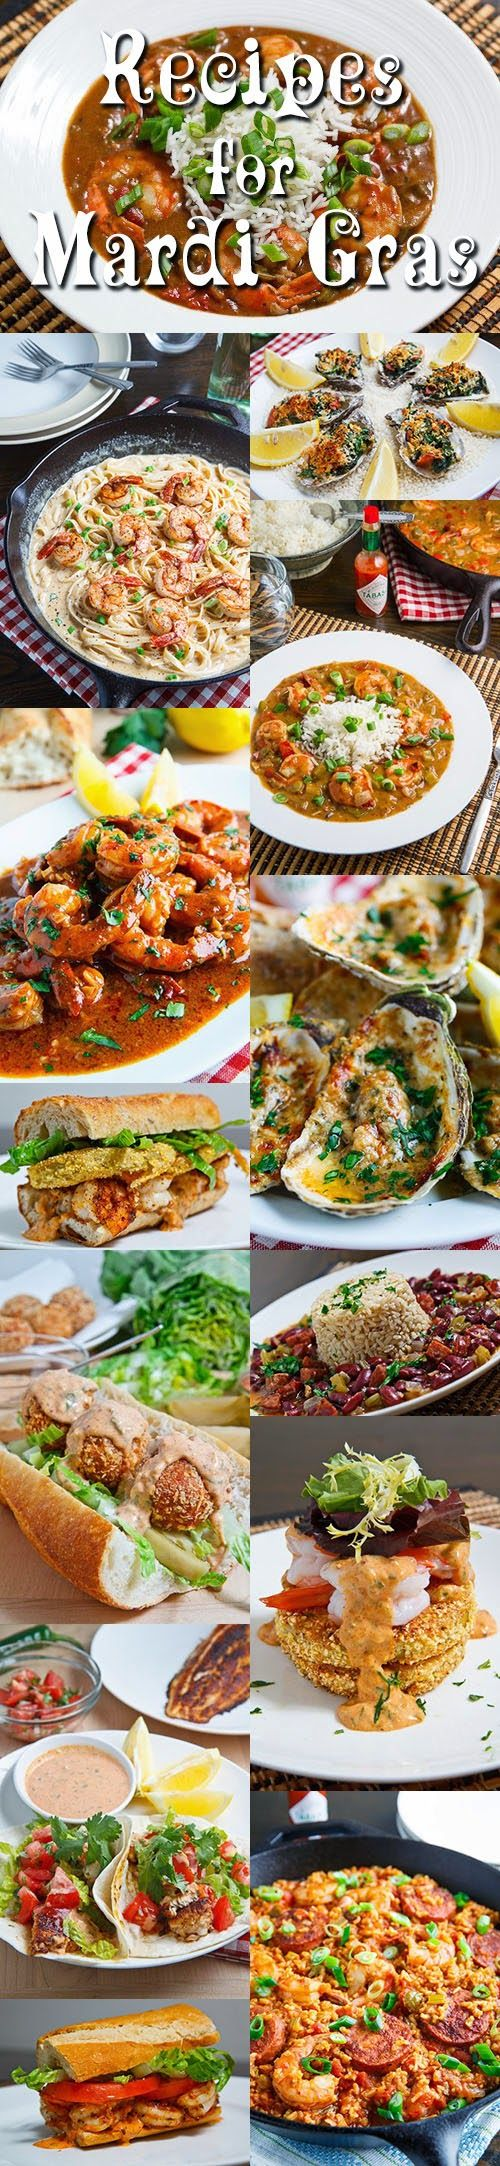 Recipes for Mardi Gras | Closet Cooking